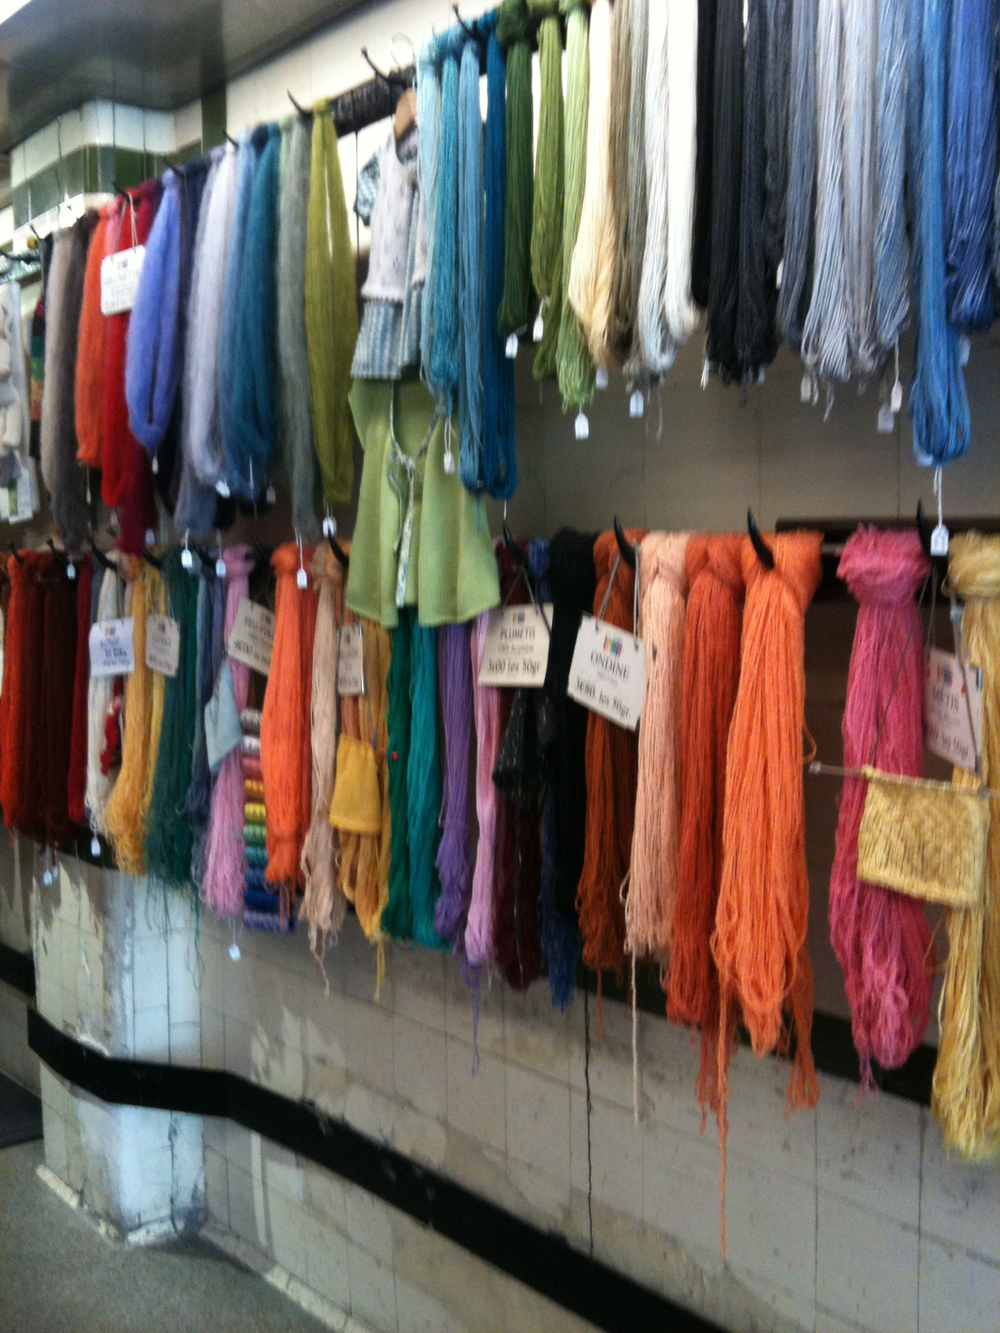 Hanging yarn in La Droguerie